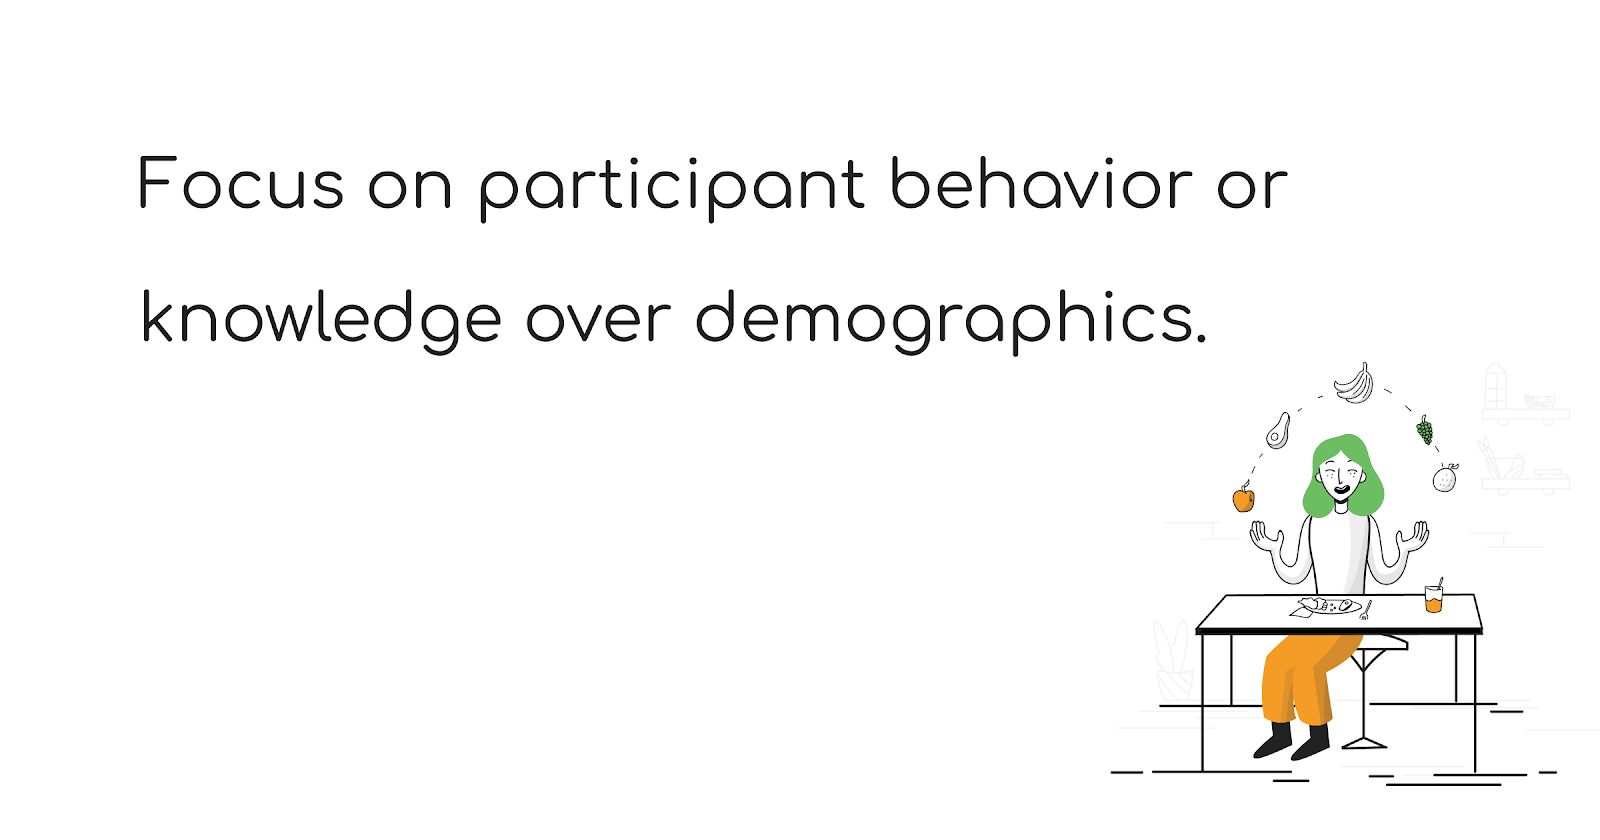 Focus on participant behavior or knowledge over demographics - The Total Guide to User Research Recruiting - User Interviews